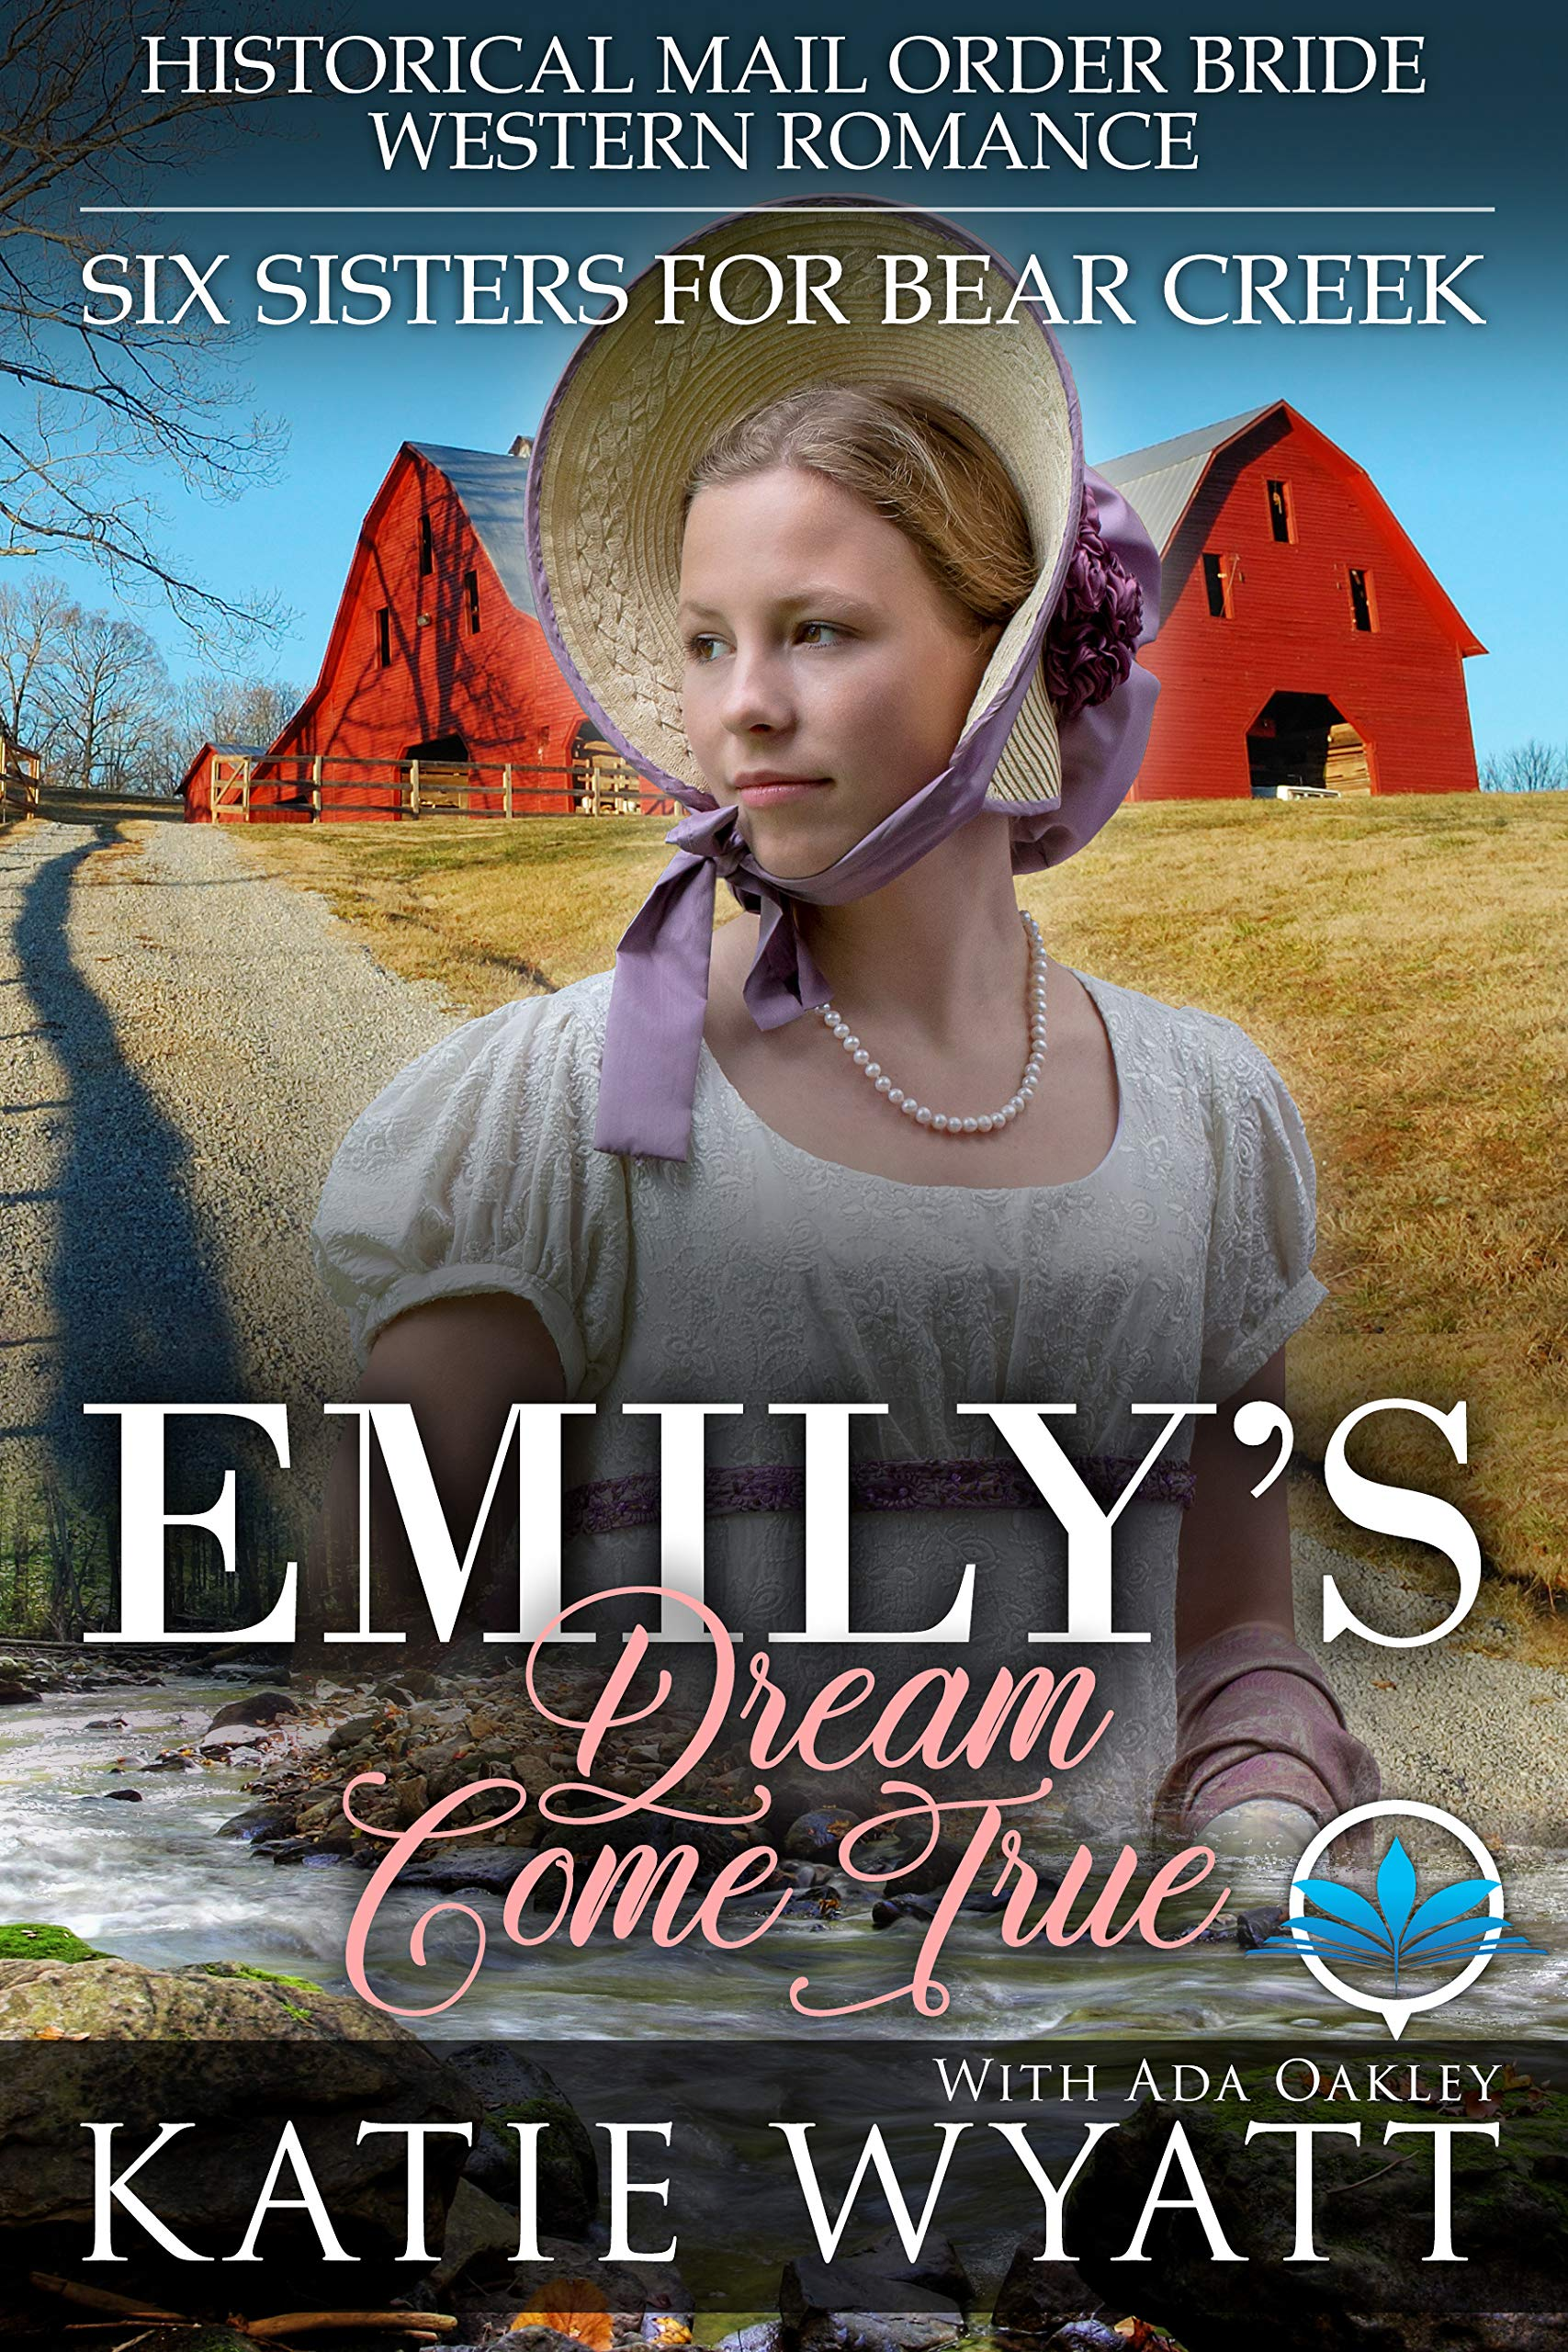 Emily's Dream Come True: Historical Mail Order Bride Western Romance (Six Sisters For Bear Creek Book 2)